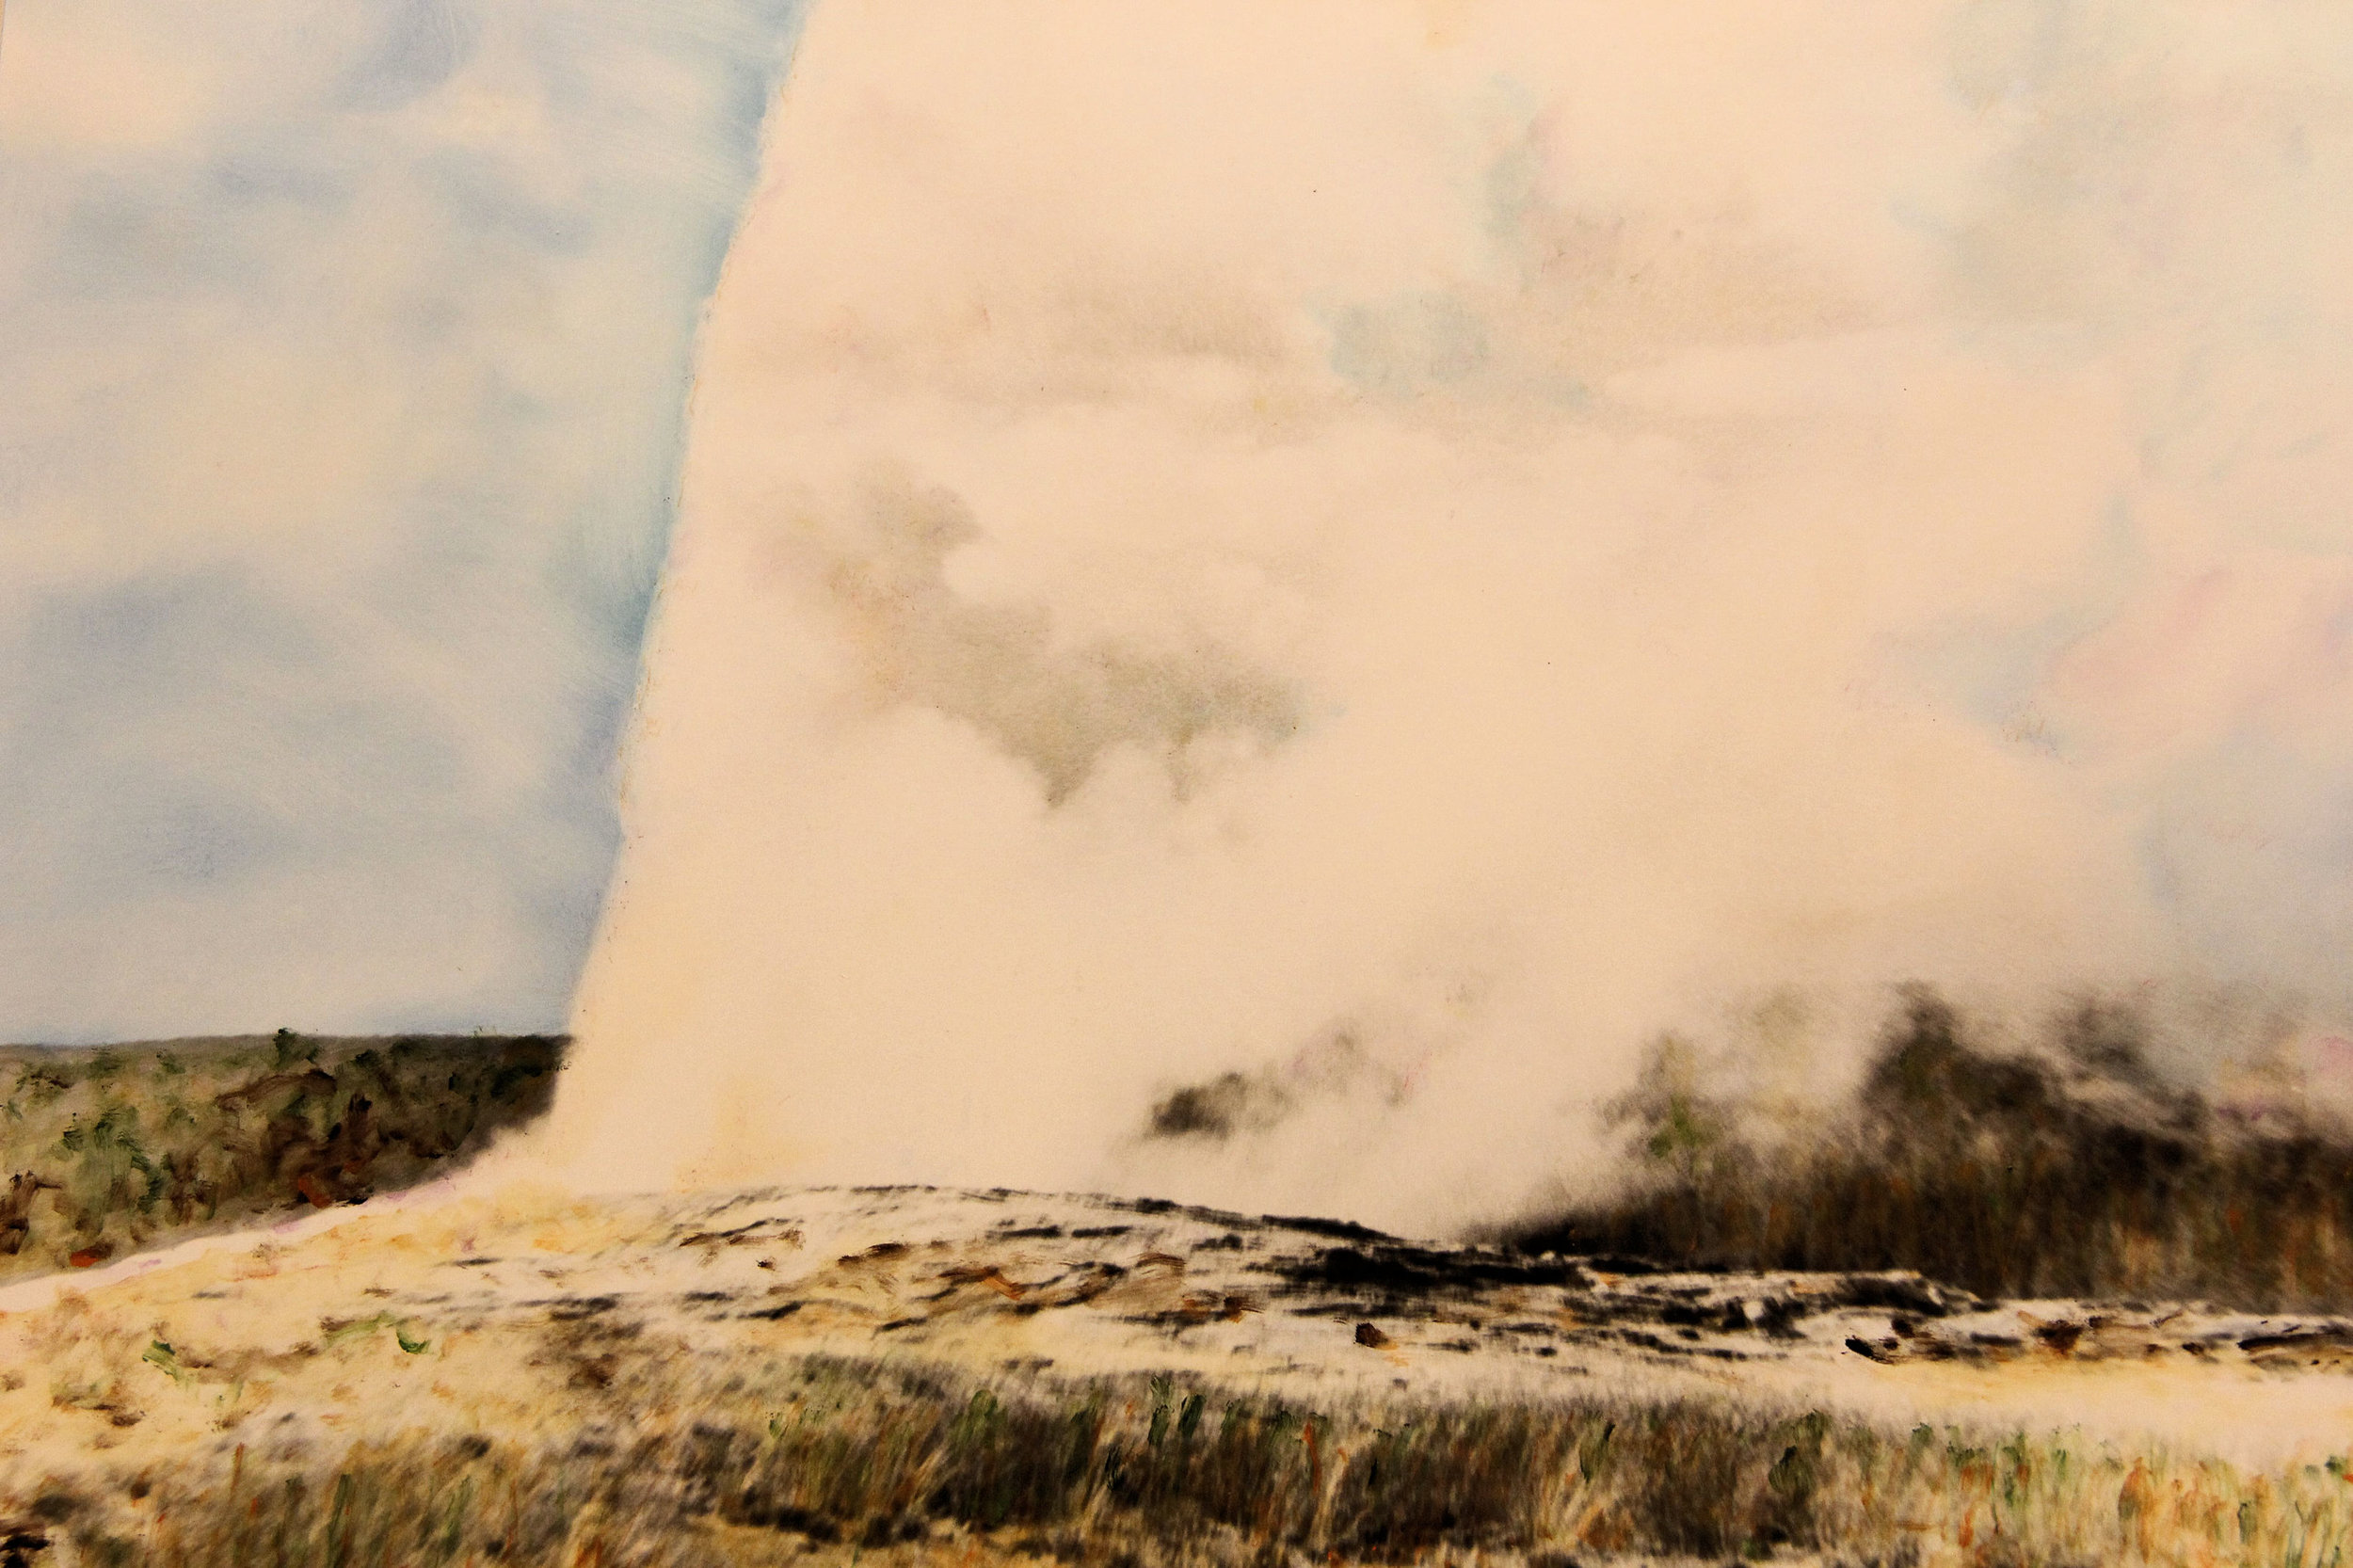 """""""Old Faithful (Yellowstone National Park)"""" by Judy Rosati, 16x20in, hand colored silver gelatin photograph (2015), $125 (matted & framed)